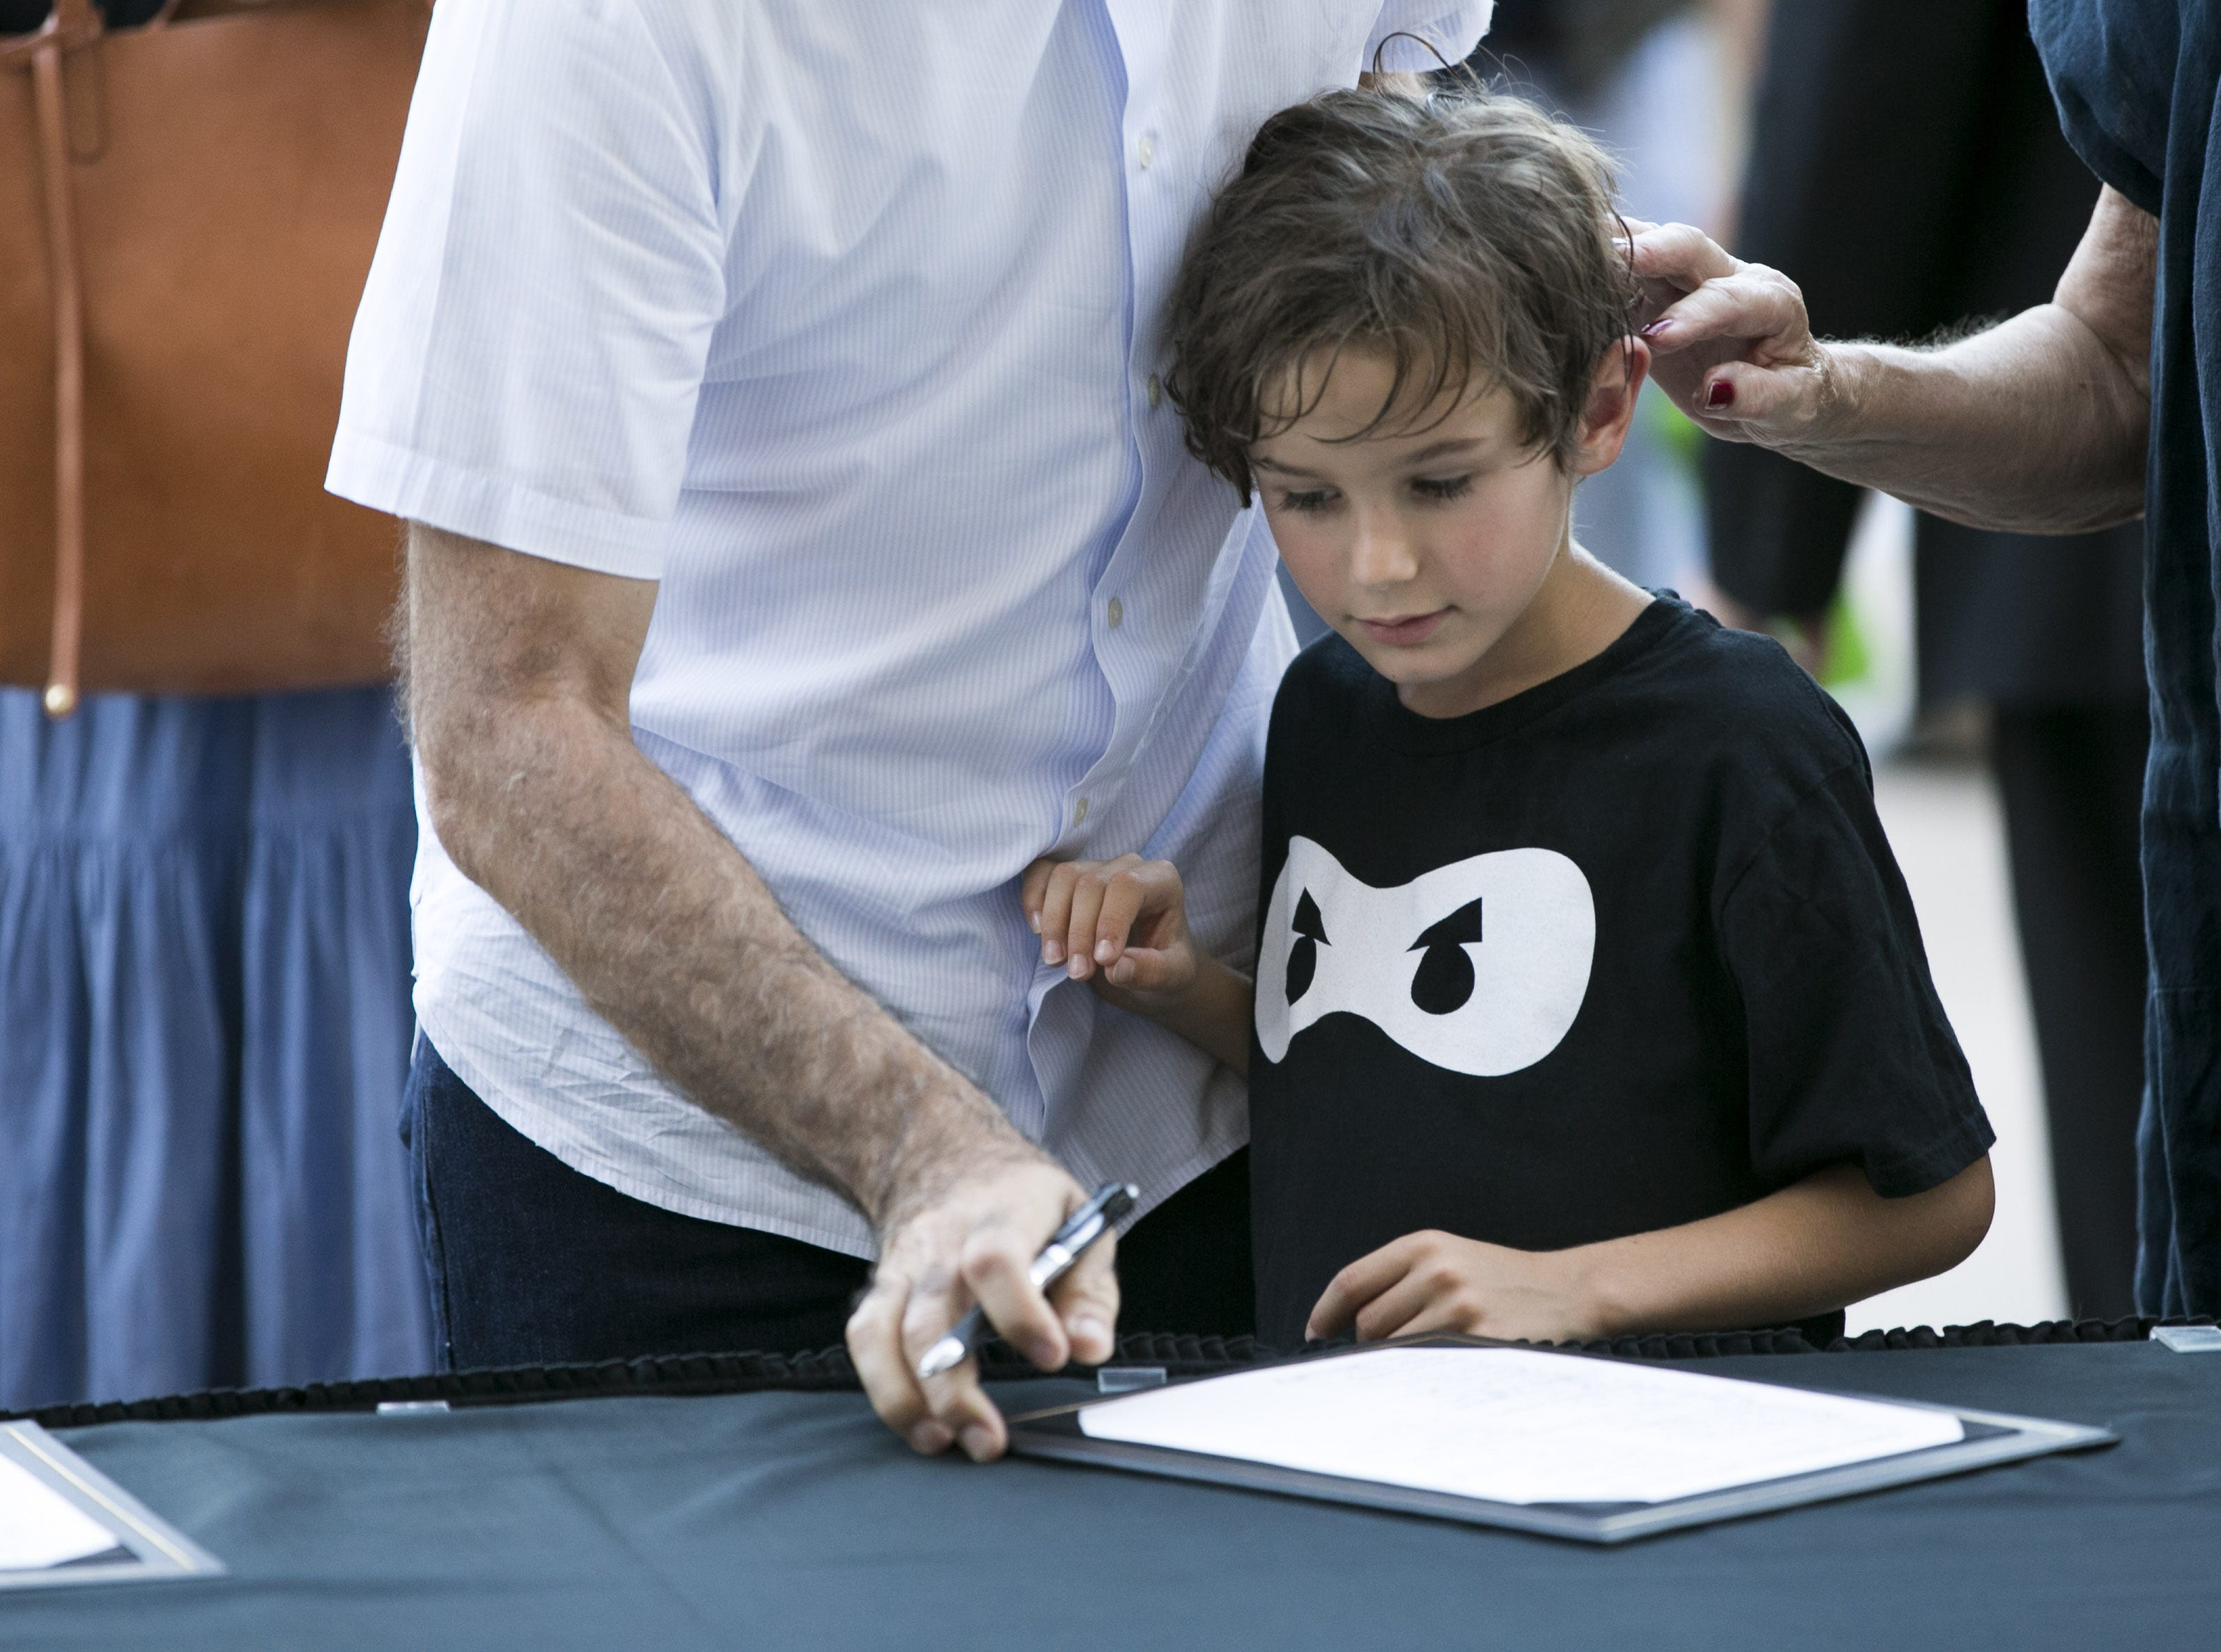 Oliver Solis, 6, of Phoenix, signs a guest book before entering the Arizona Capitol building where Senator John McCain lies in state in Phoenix on Wednesday, August 29, 2018.